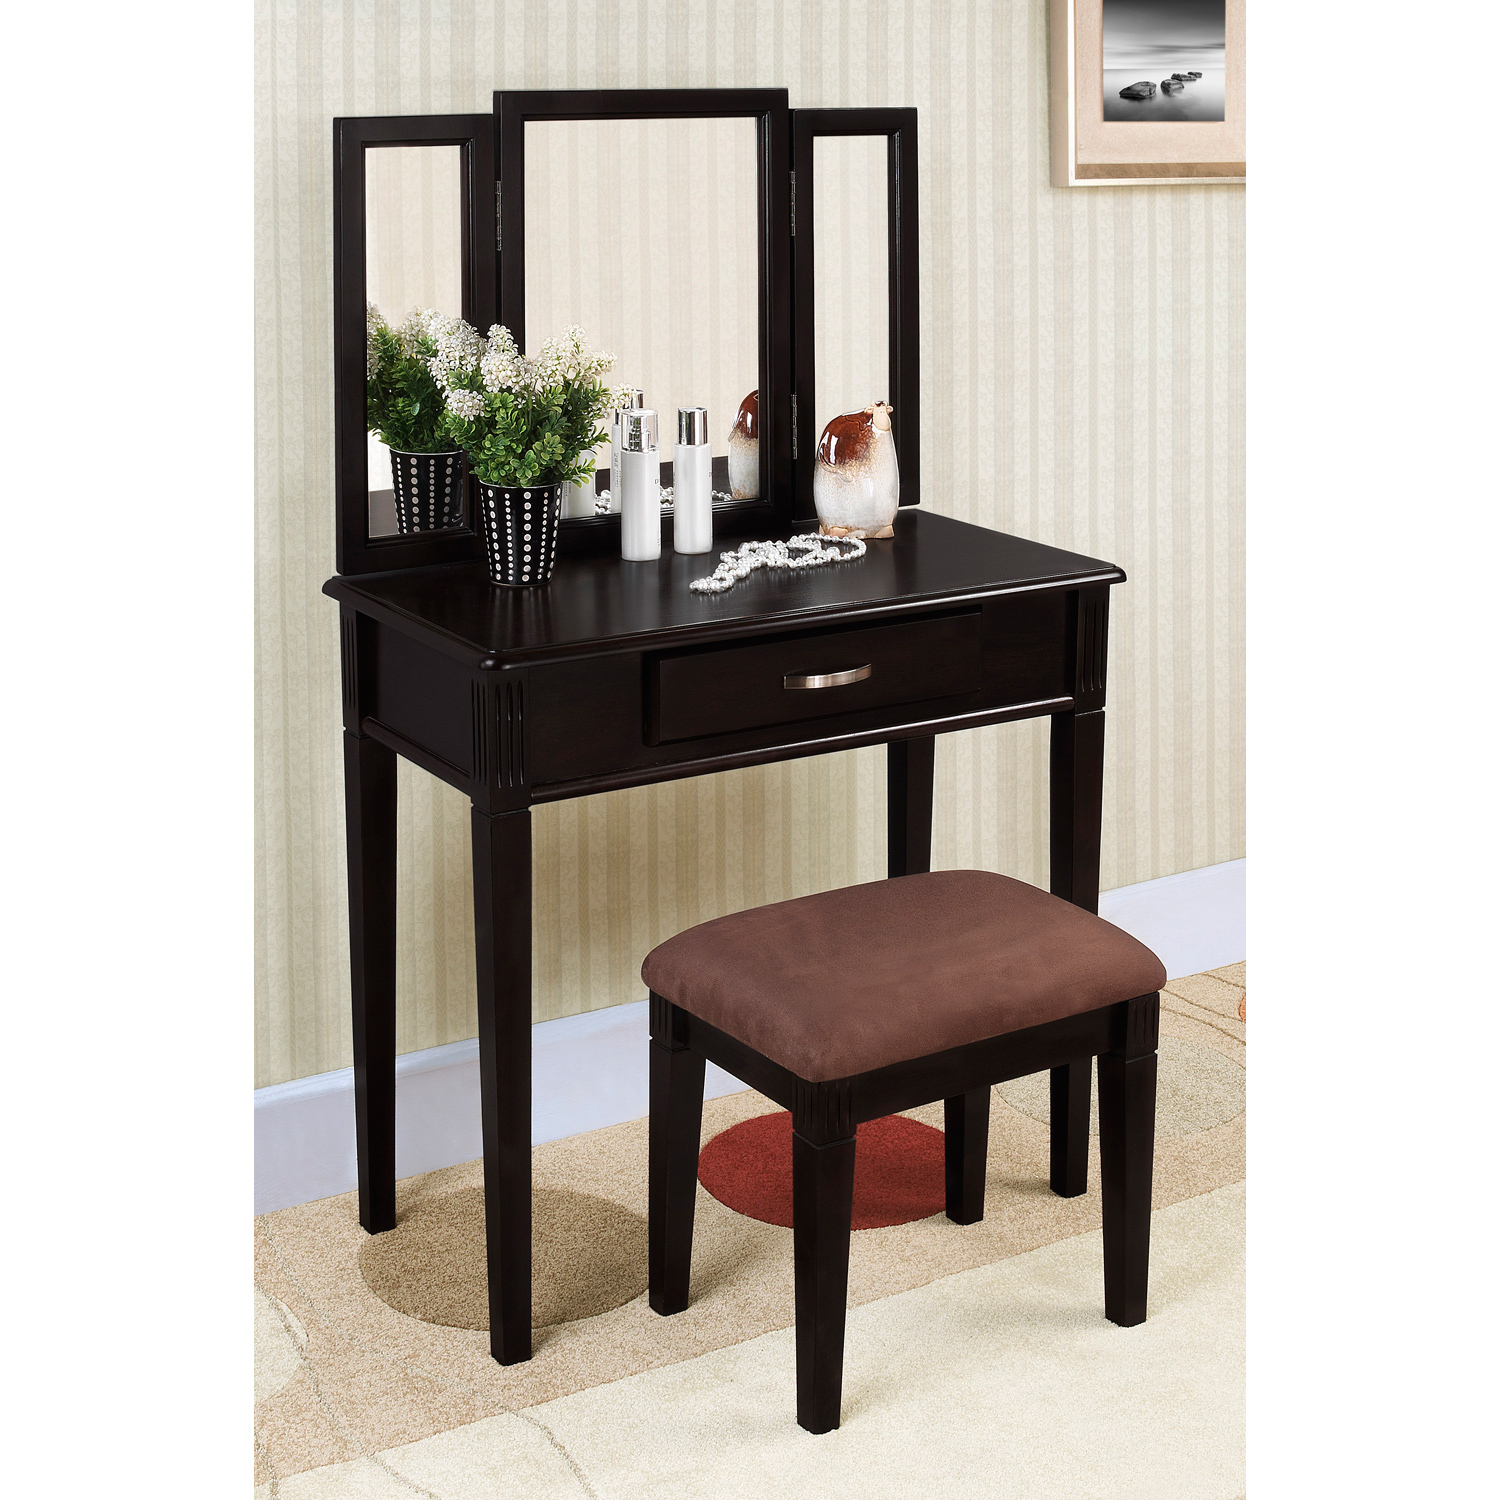 Mirrored Vanity Set for Elegant Bedroom Furniture Design: Mirrored Vanity Set | Tri Mirror Vanity Set | Cheap Bedroom Vanity Sets